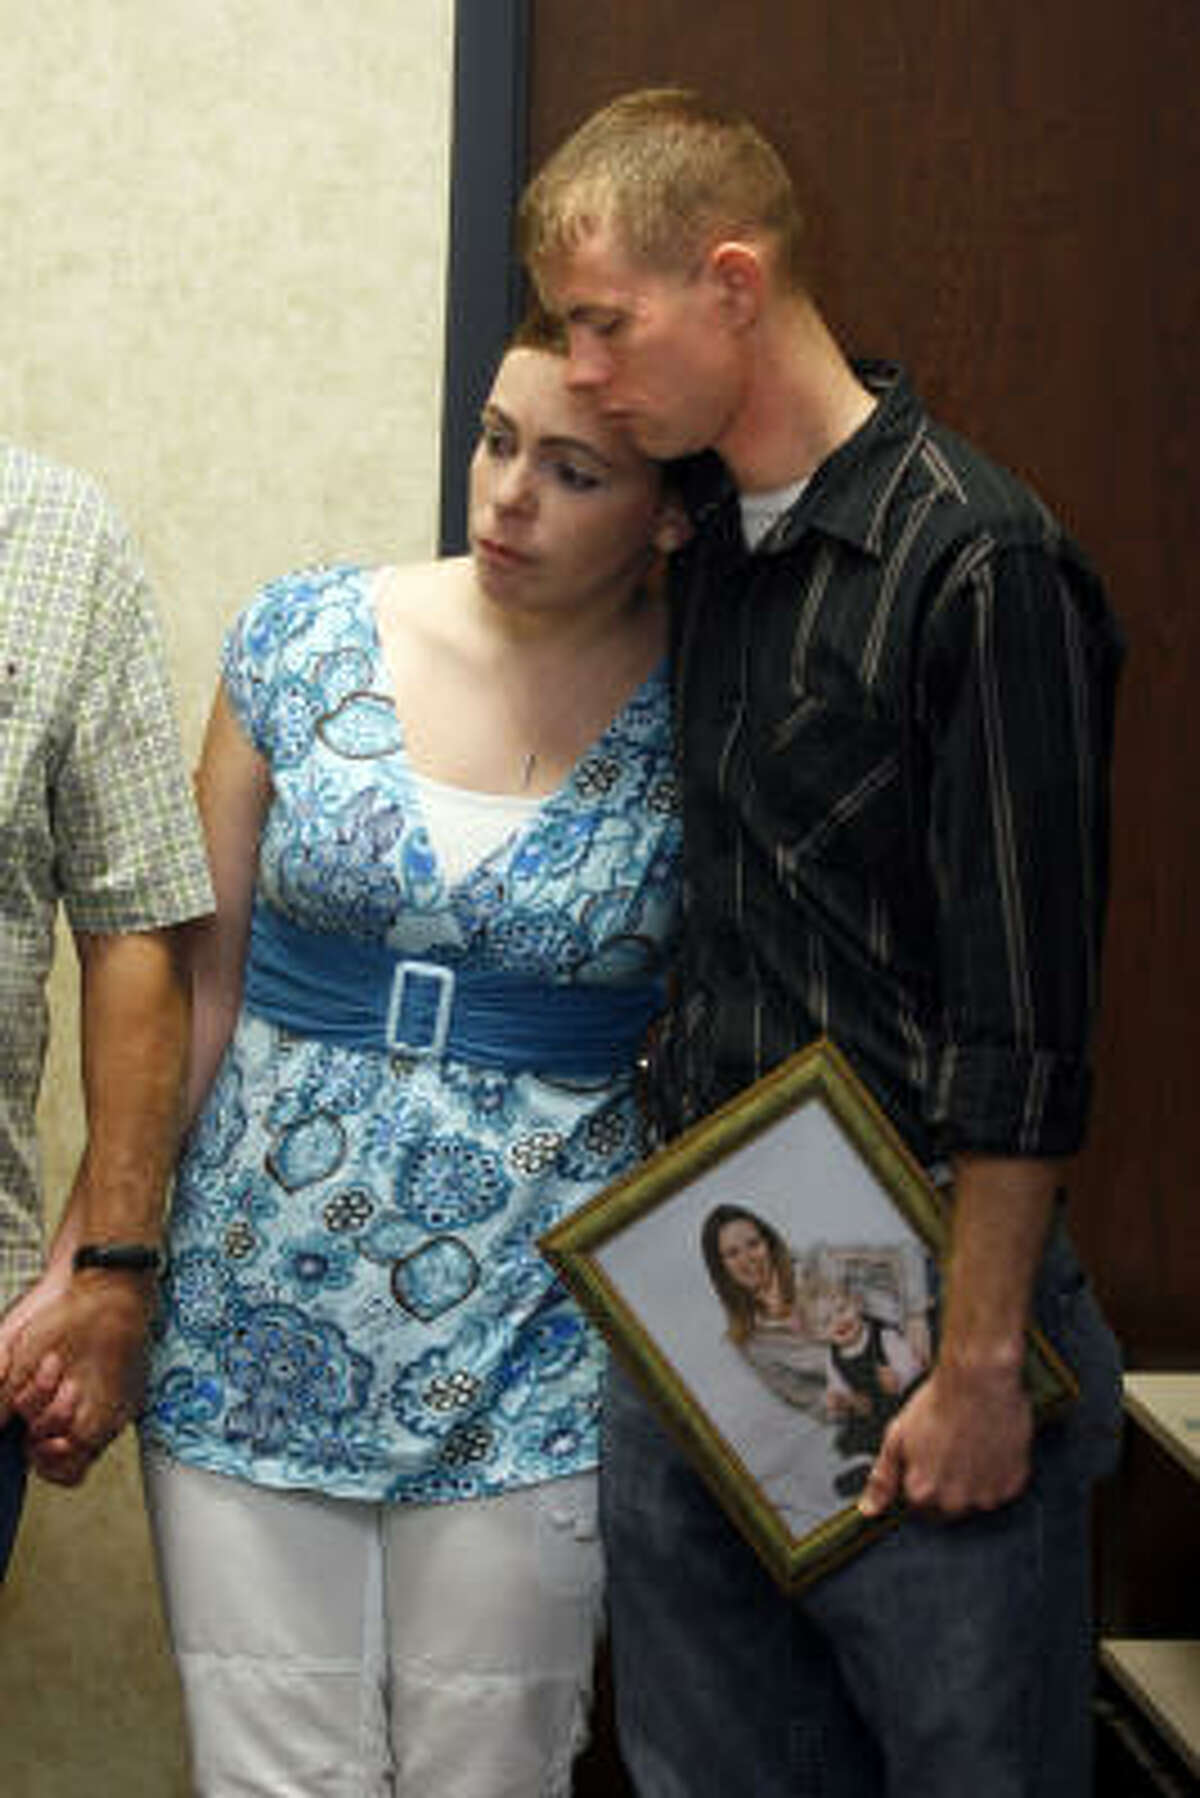 Jimmy Goodson, holding a picture of his sister Bridgette Gearen, is joined by his wife, Amanda, during a July 2007 Galveston news conference. Gearen, of Orange, was raped, beaten and strangled near her Bolivar Peninsula vacation beach house. No arrests have been made.